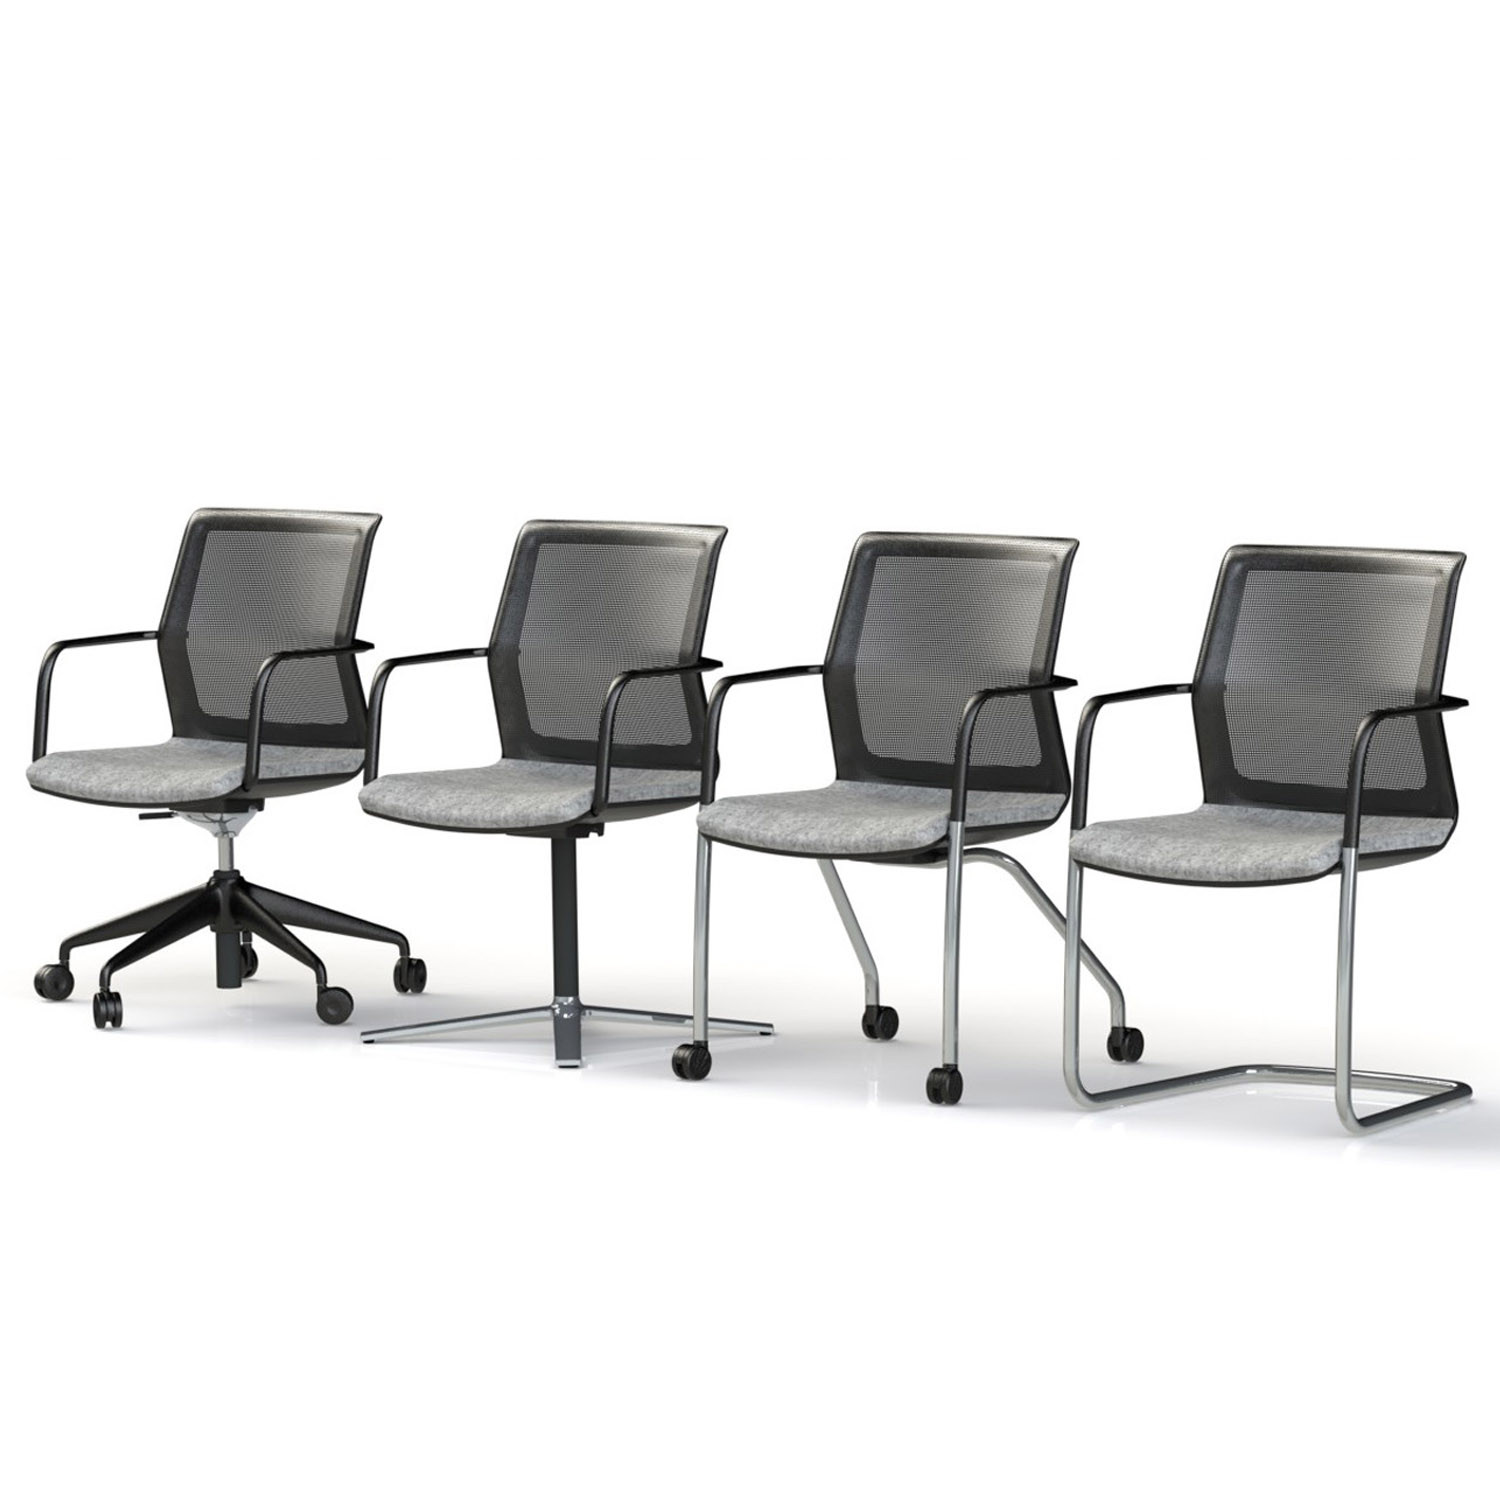 Workday Conference Chairs